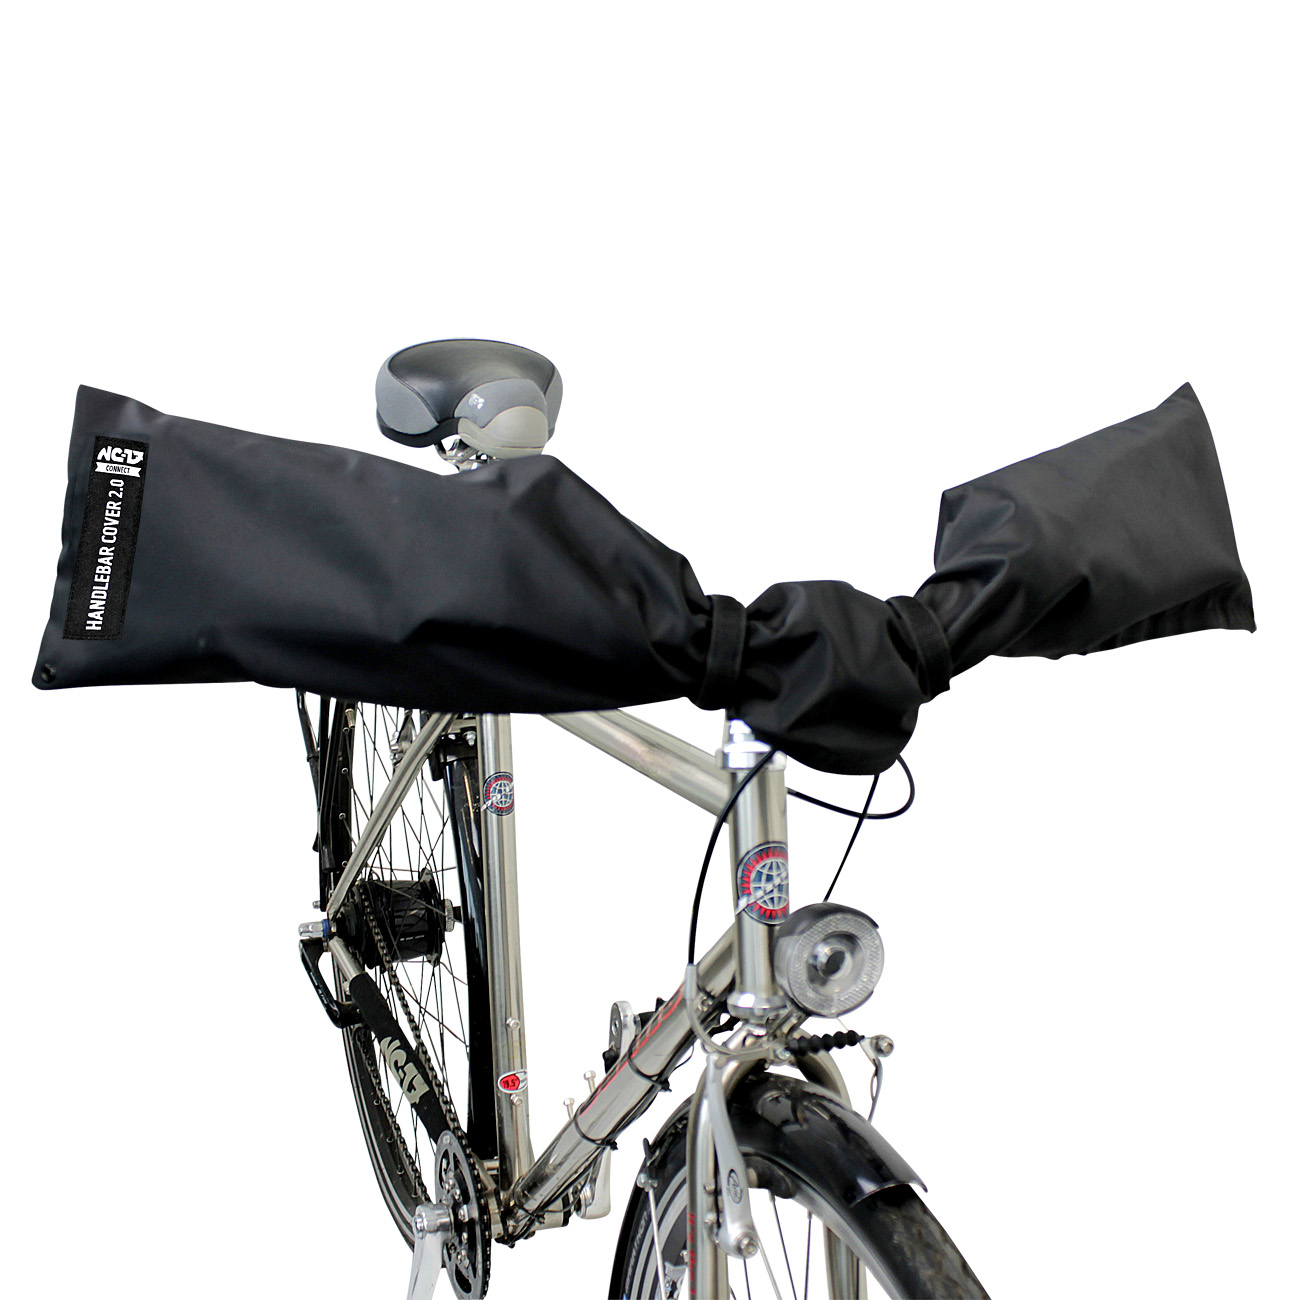 NC-17 Connect Handlebar Cover 2.0<br/>Für Lenker, one size fits all, schwarz<br/>